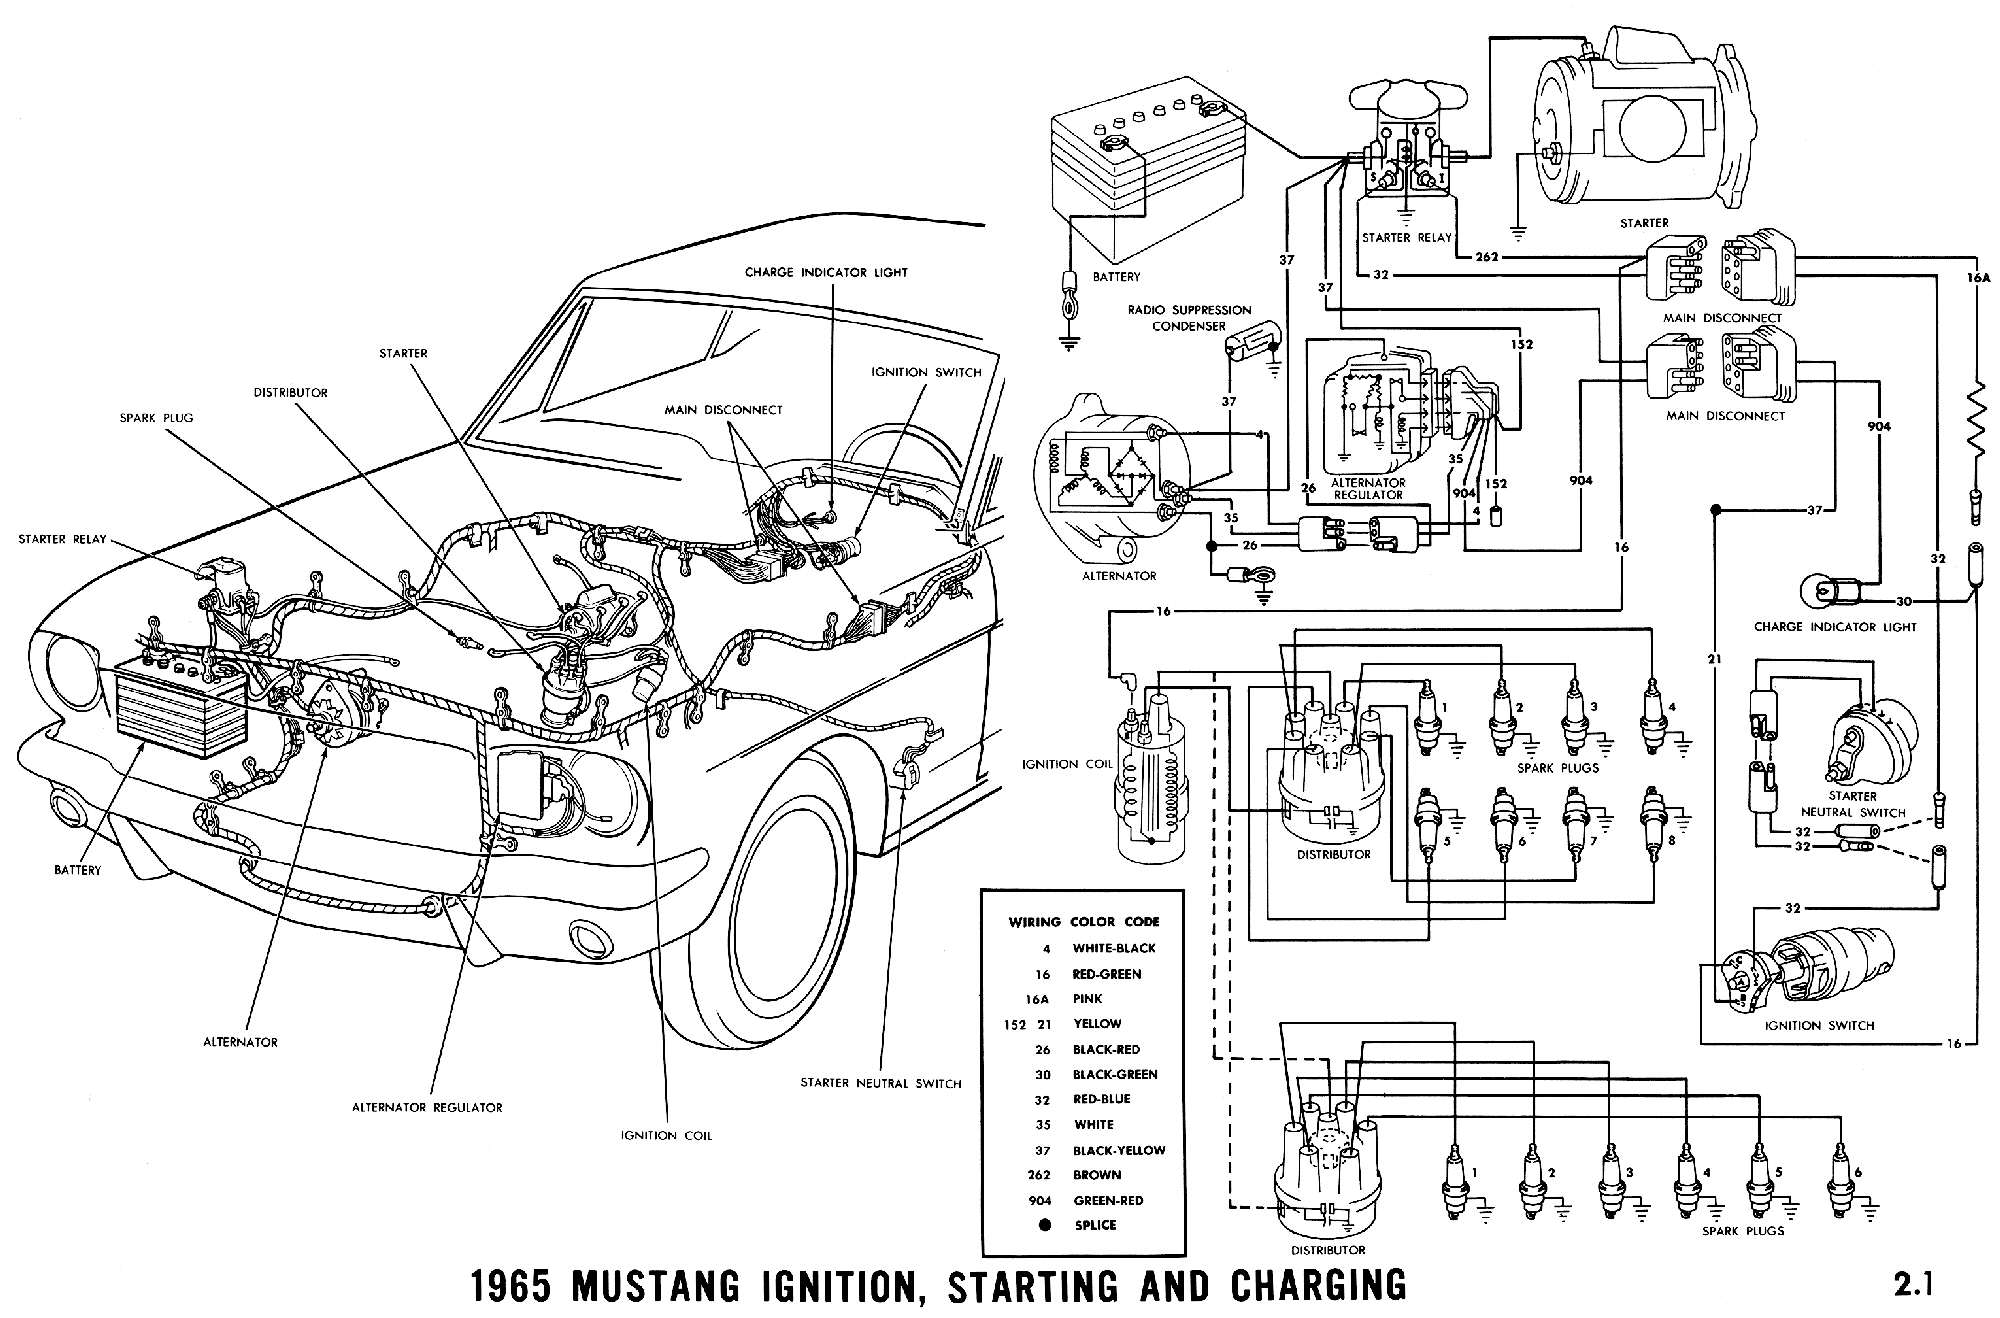 65 lincoln ignition wiring diagram with 1965 Mustang Wiring Diagrams on 687009 Electrical Gremlins Front Running Lights Turn Signals Ammeter Question additionally 733146 64 5 Under Dash Harness Questions moreover 85 Ford 150 351 Alternator Wiring Diagram furthermore 1965 Mustang Wiring Diagrams in addition 63 T Bird Restoration Wiring Diagrams.